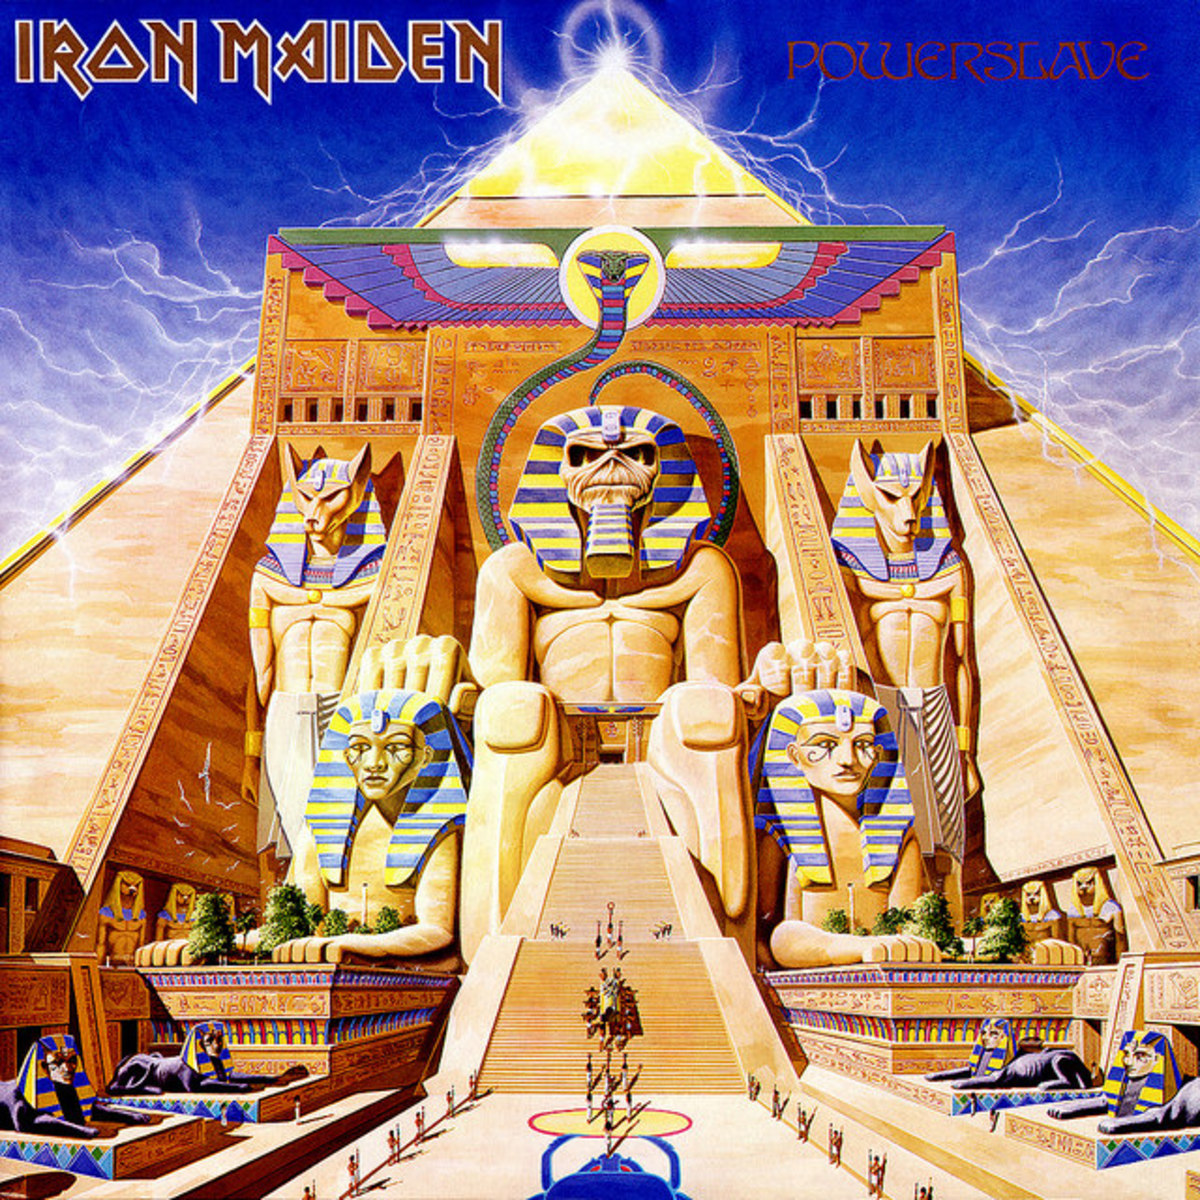 "Iron Maiden ""Powerslave"" Capitol Records SJ-12321  12"" LP Vinyl Records U.S. Pressing (1984) Album Cover Art by Derek Riggs"